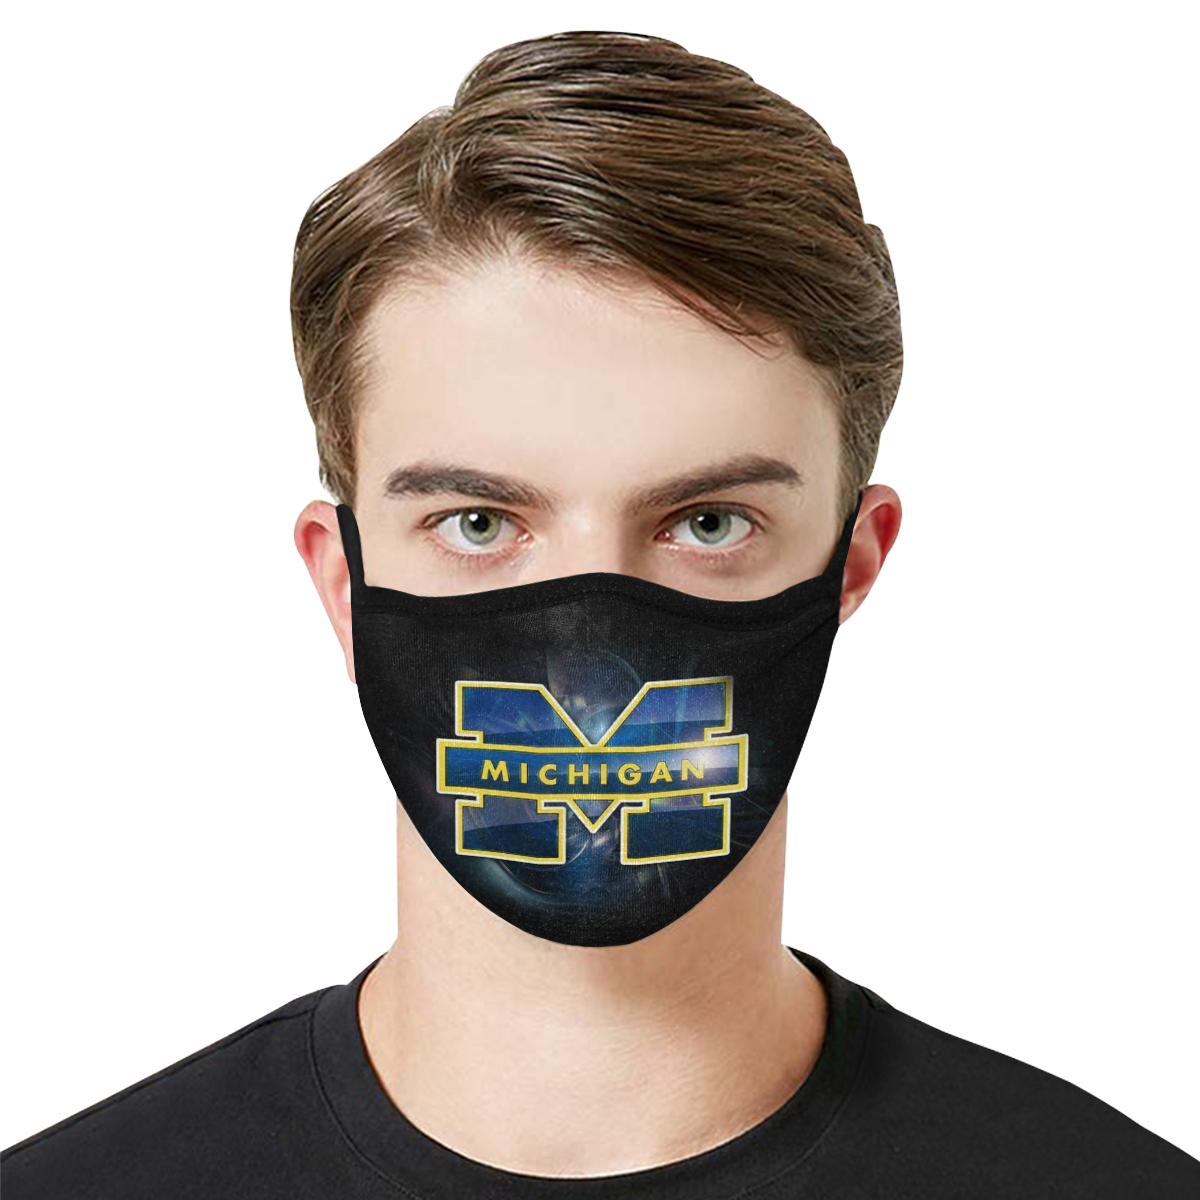 National football league michigan wolverines cotton face mask 3